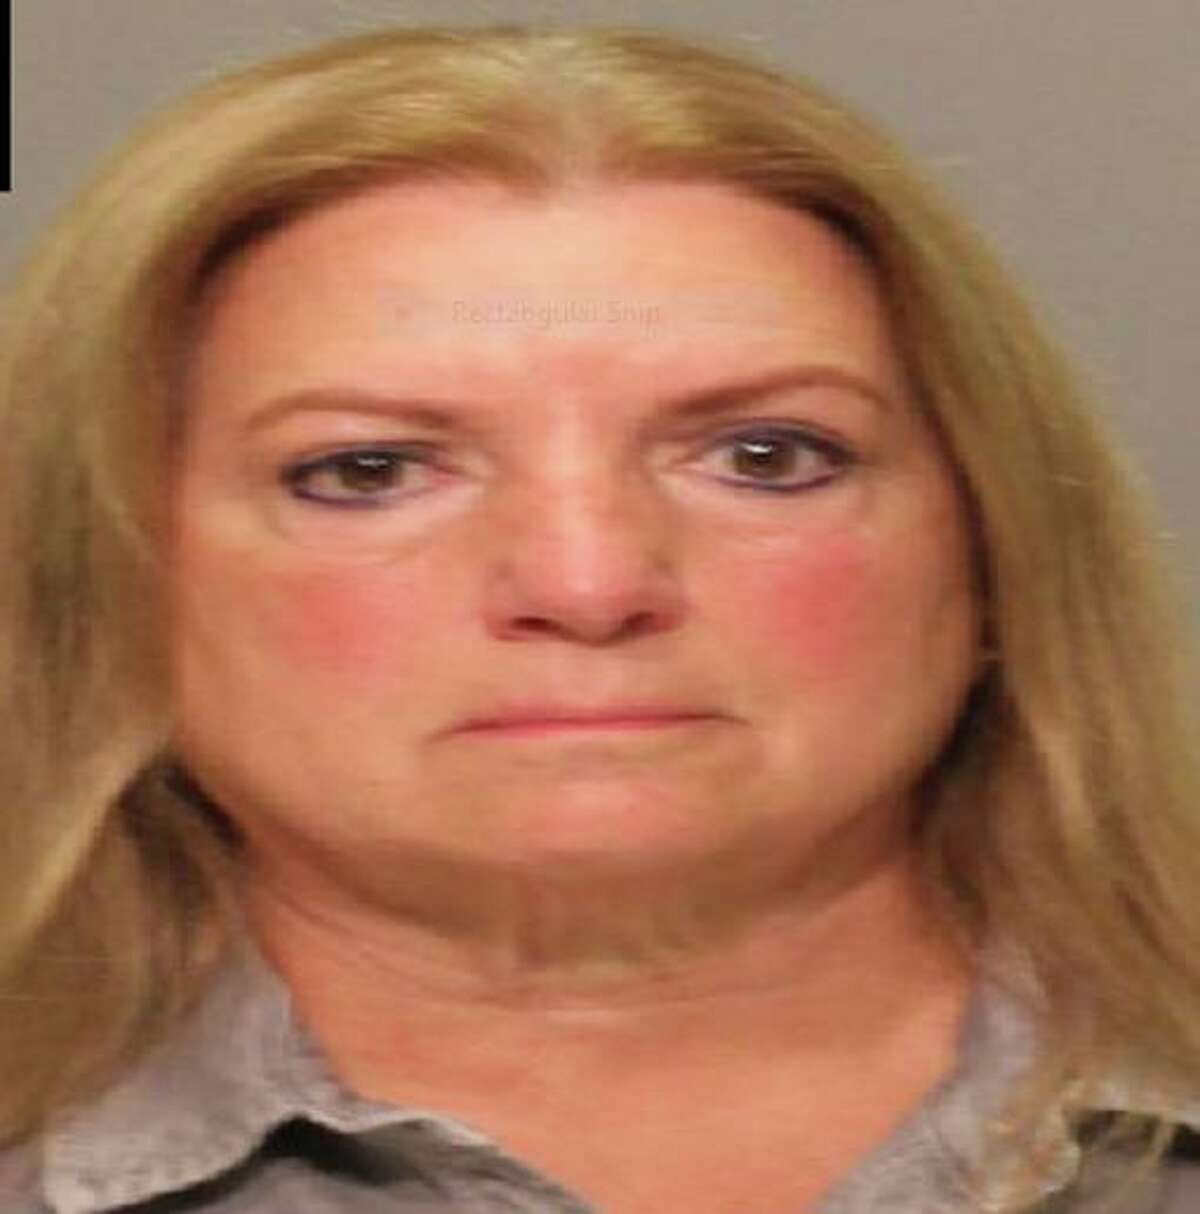 Darlene Moonan, 64, of Woodland Court, Bedford, N.Y., was arrested on charges of first-degree larceny and first-degree identity theft, according to the Greenwich Police Department.